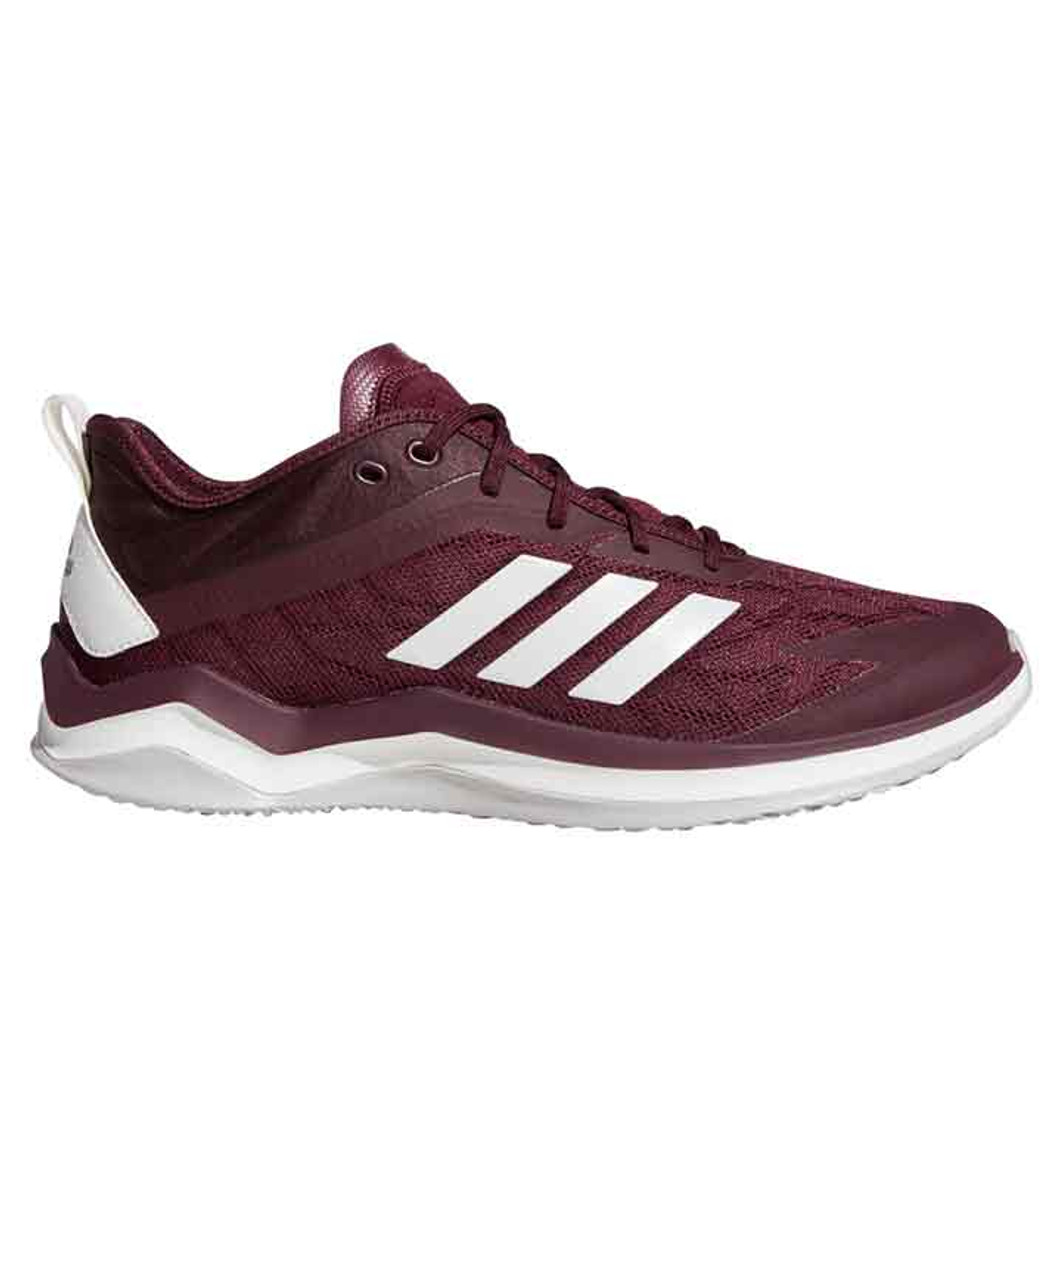 Adidas Maroon Speed Trainer 4 Shoes